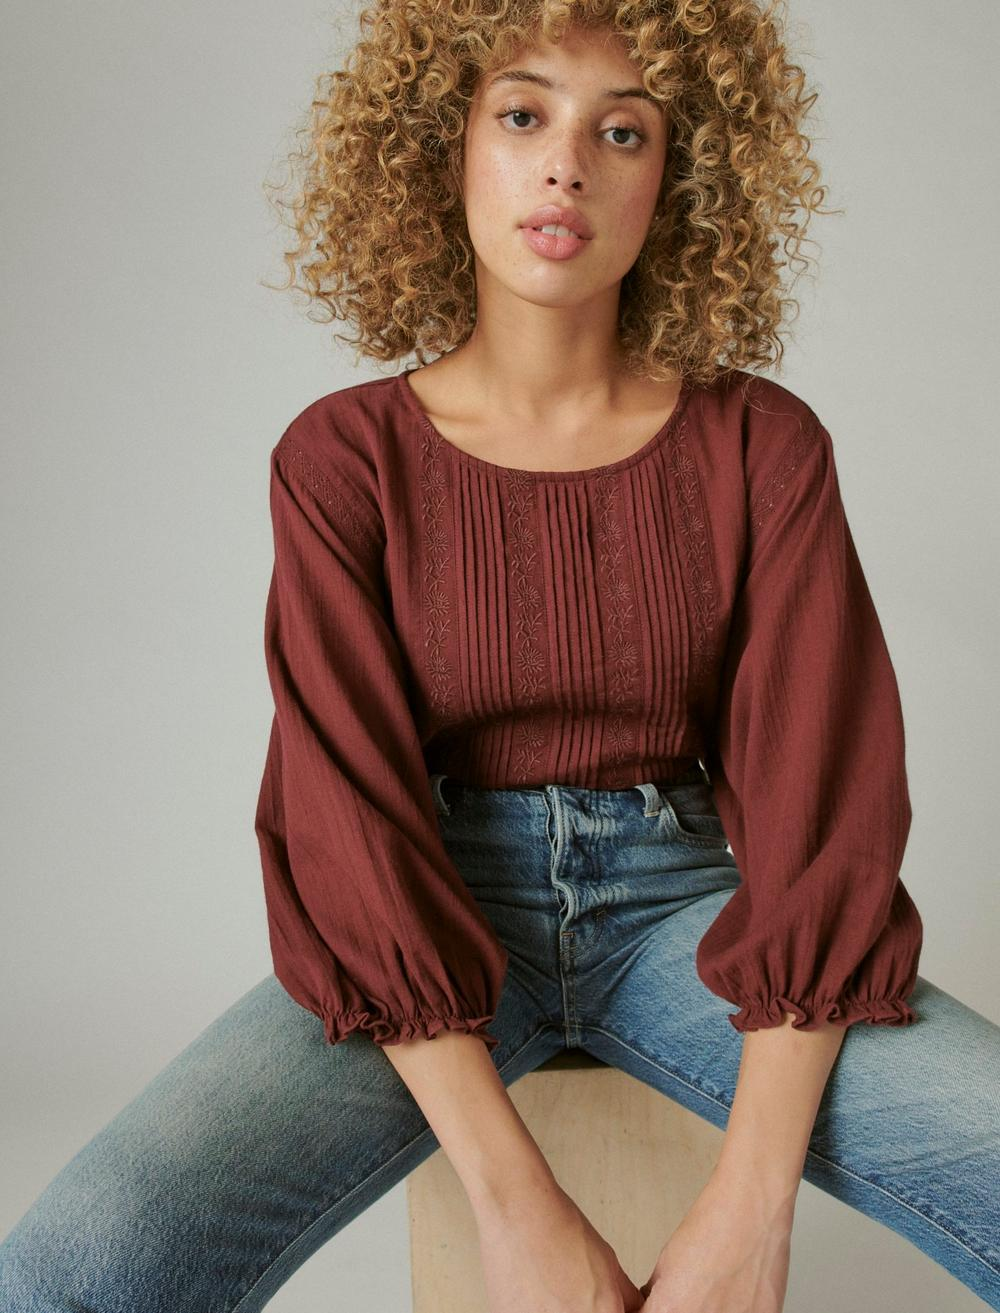 EMBROIDERED ROUND NECK BOXY BLOUSE, image 6